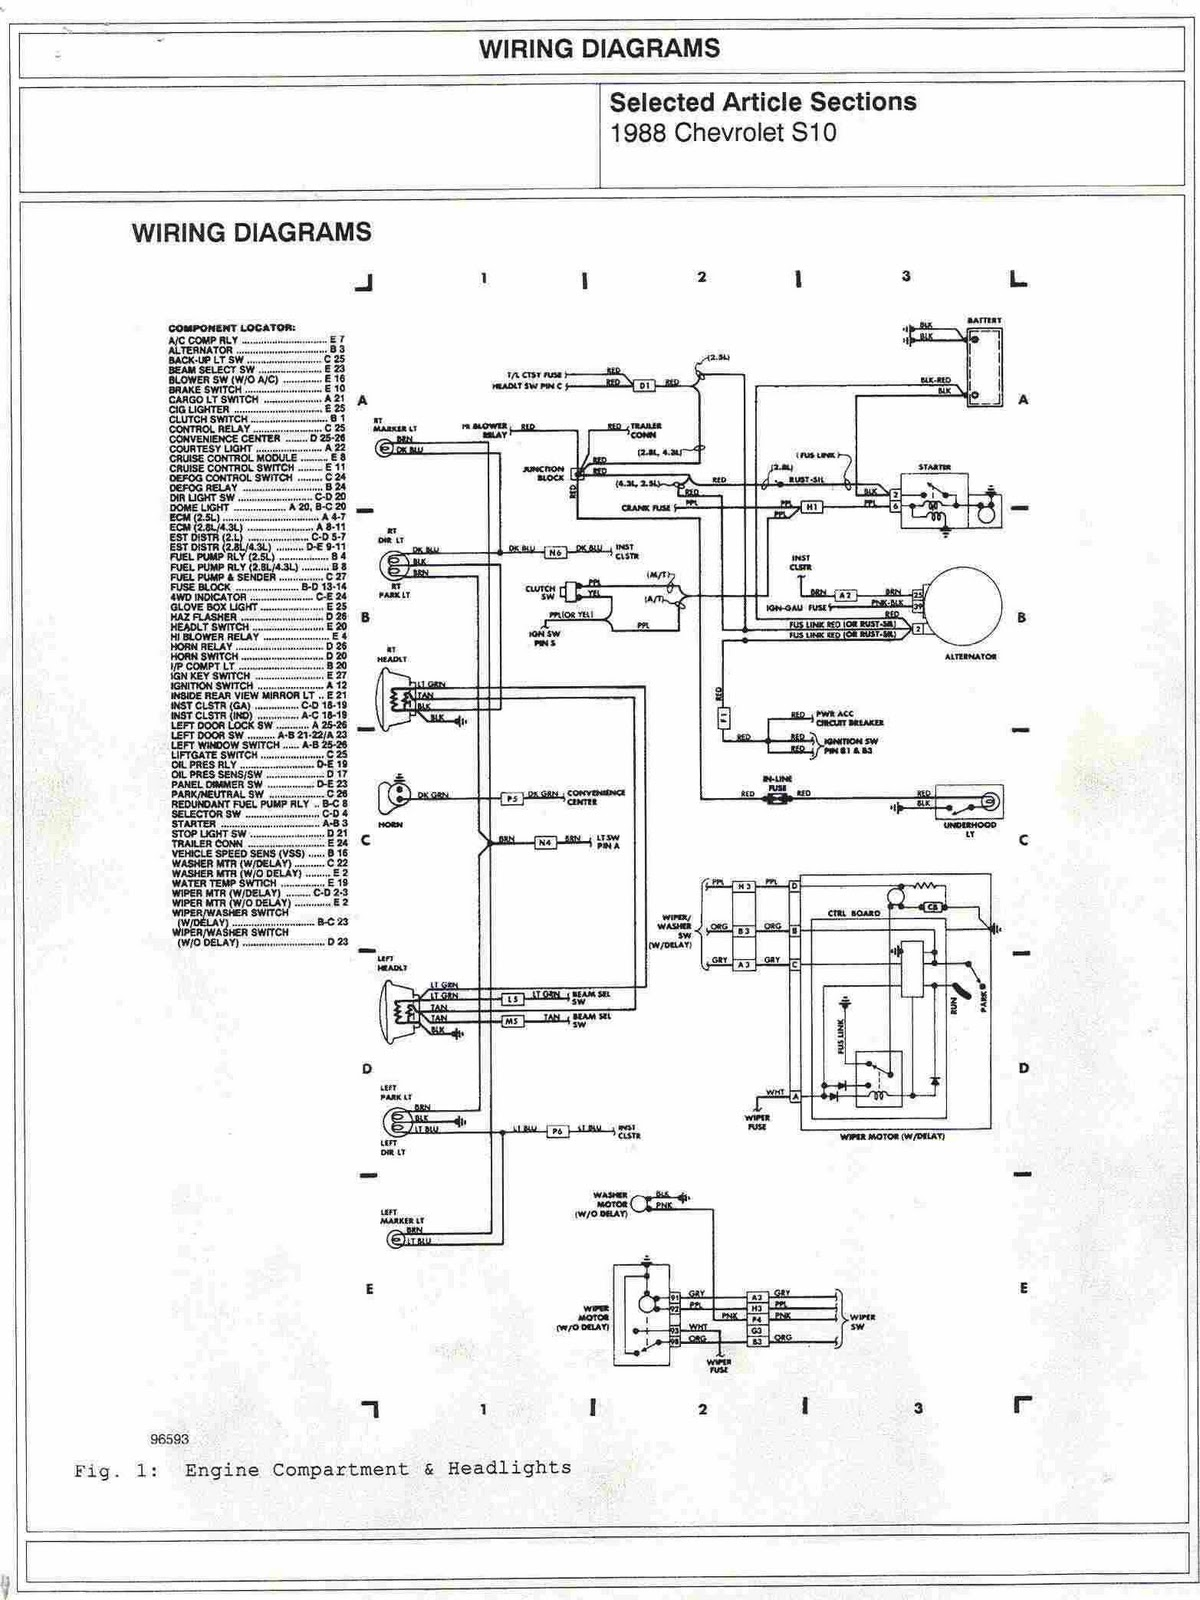 1988+Chevrolet+S10+Engine+Compartment+and+Headlights+Wiring+Diagrams 95 s10 wiring diagram 95 tahoe wiring diagram \u2022 wiring diagrams  at couponss.co